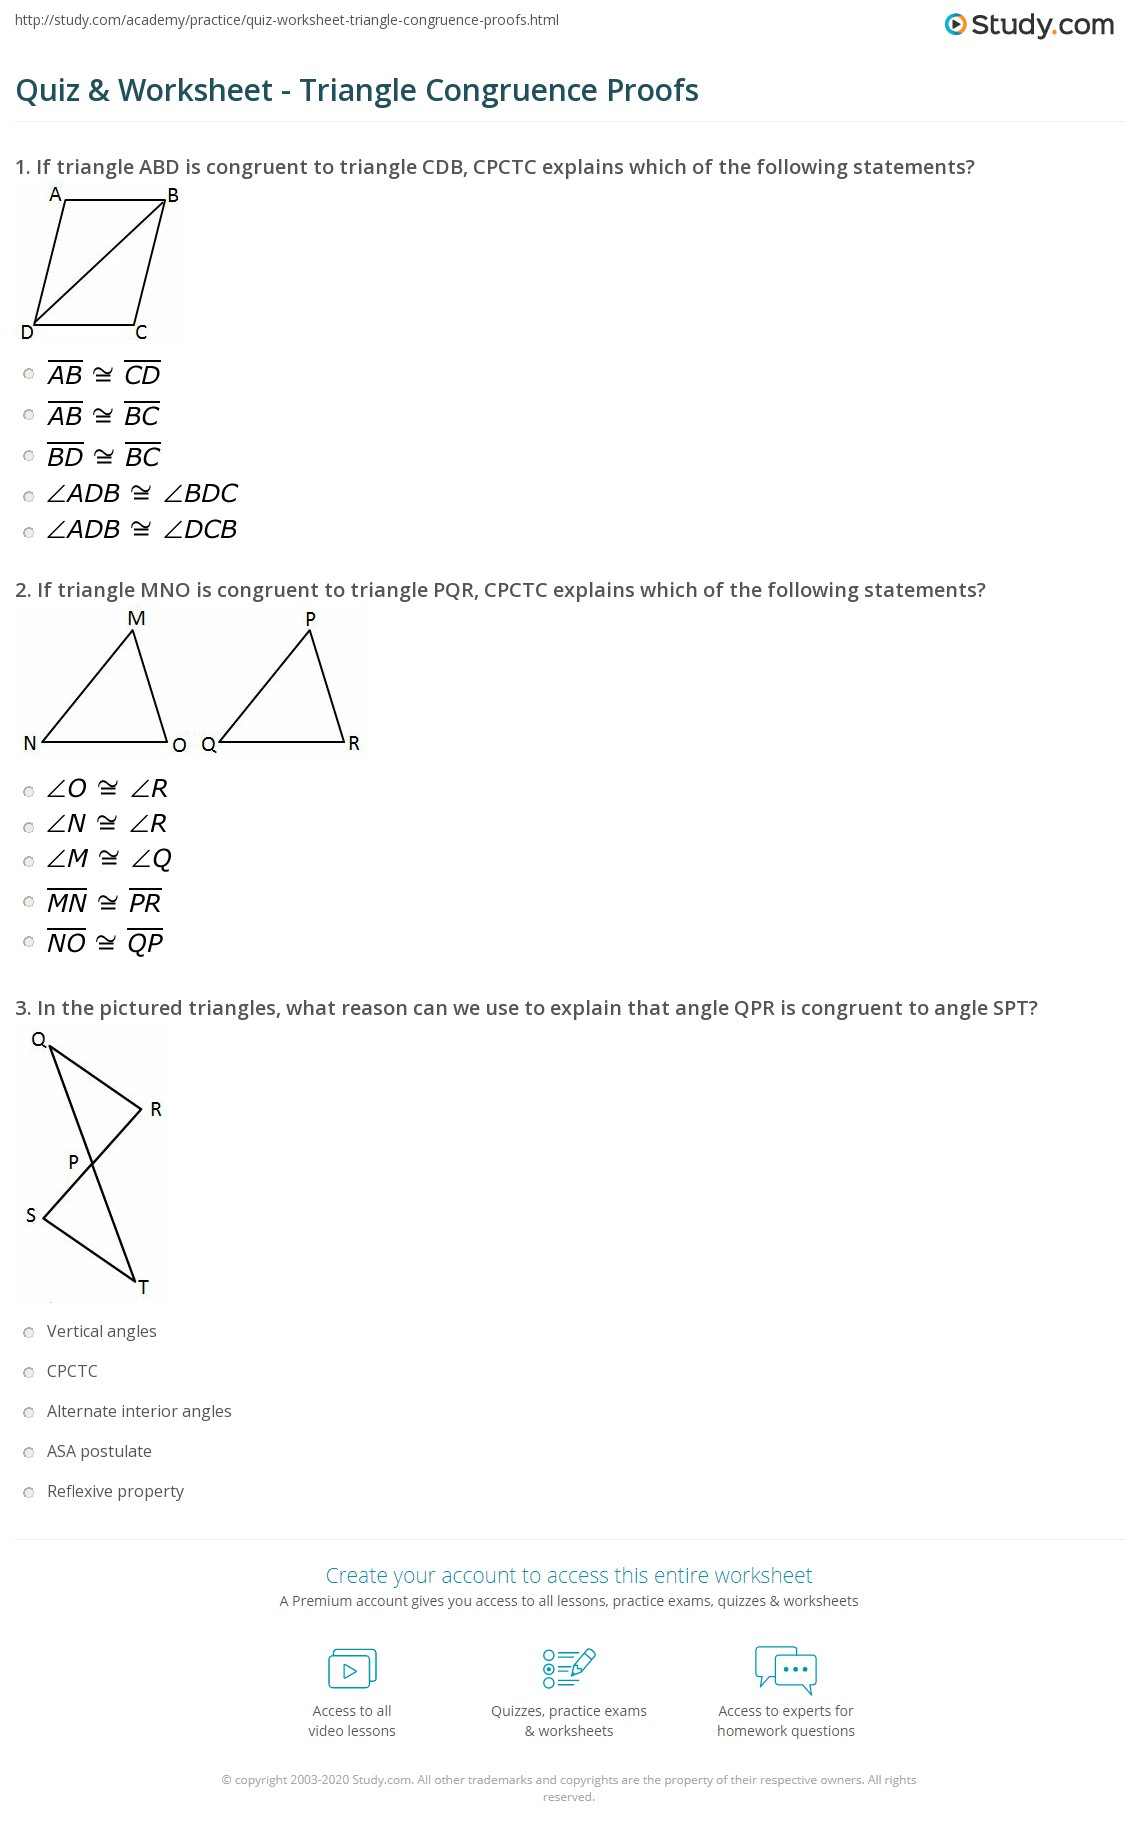 Worksheets Geometry Worksheet Congruent Triangles Answers quiz worksheet triangle congruence proofs study com print corresponding parts of congruent triangles worksheet